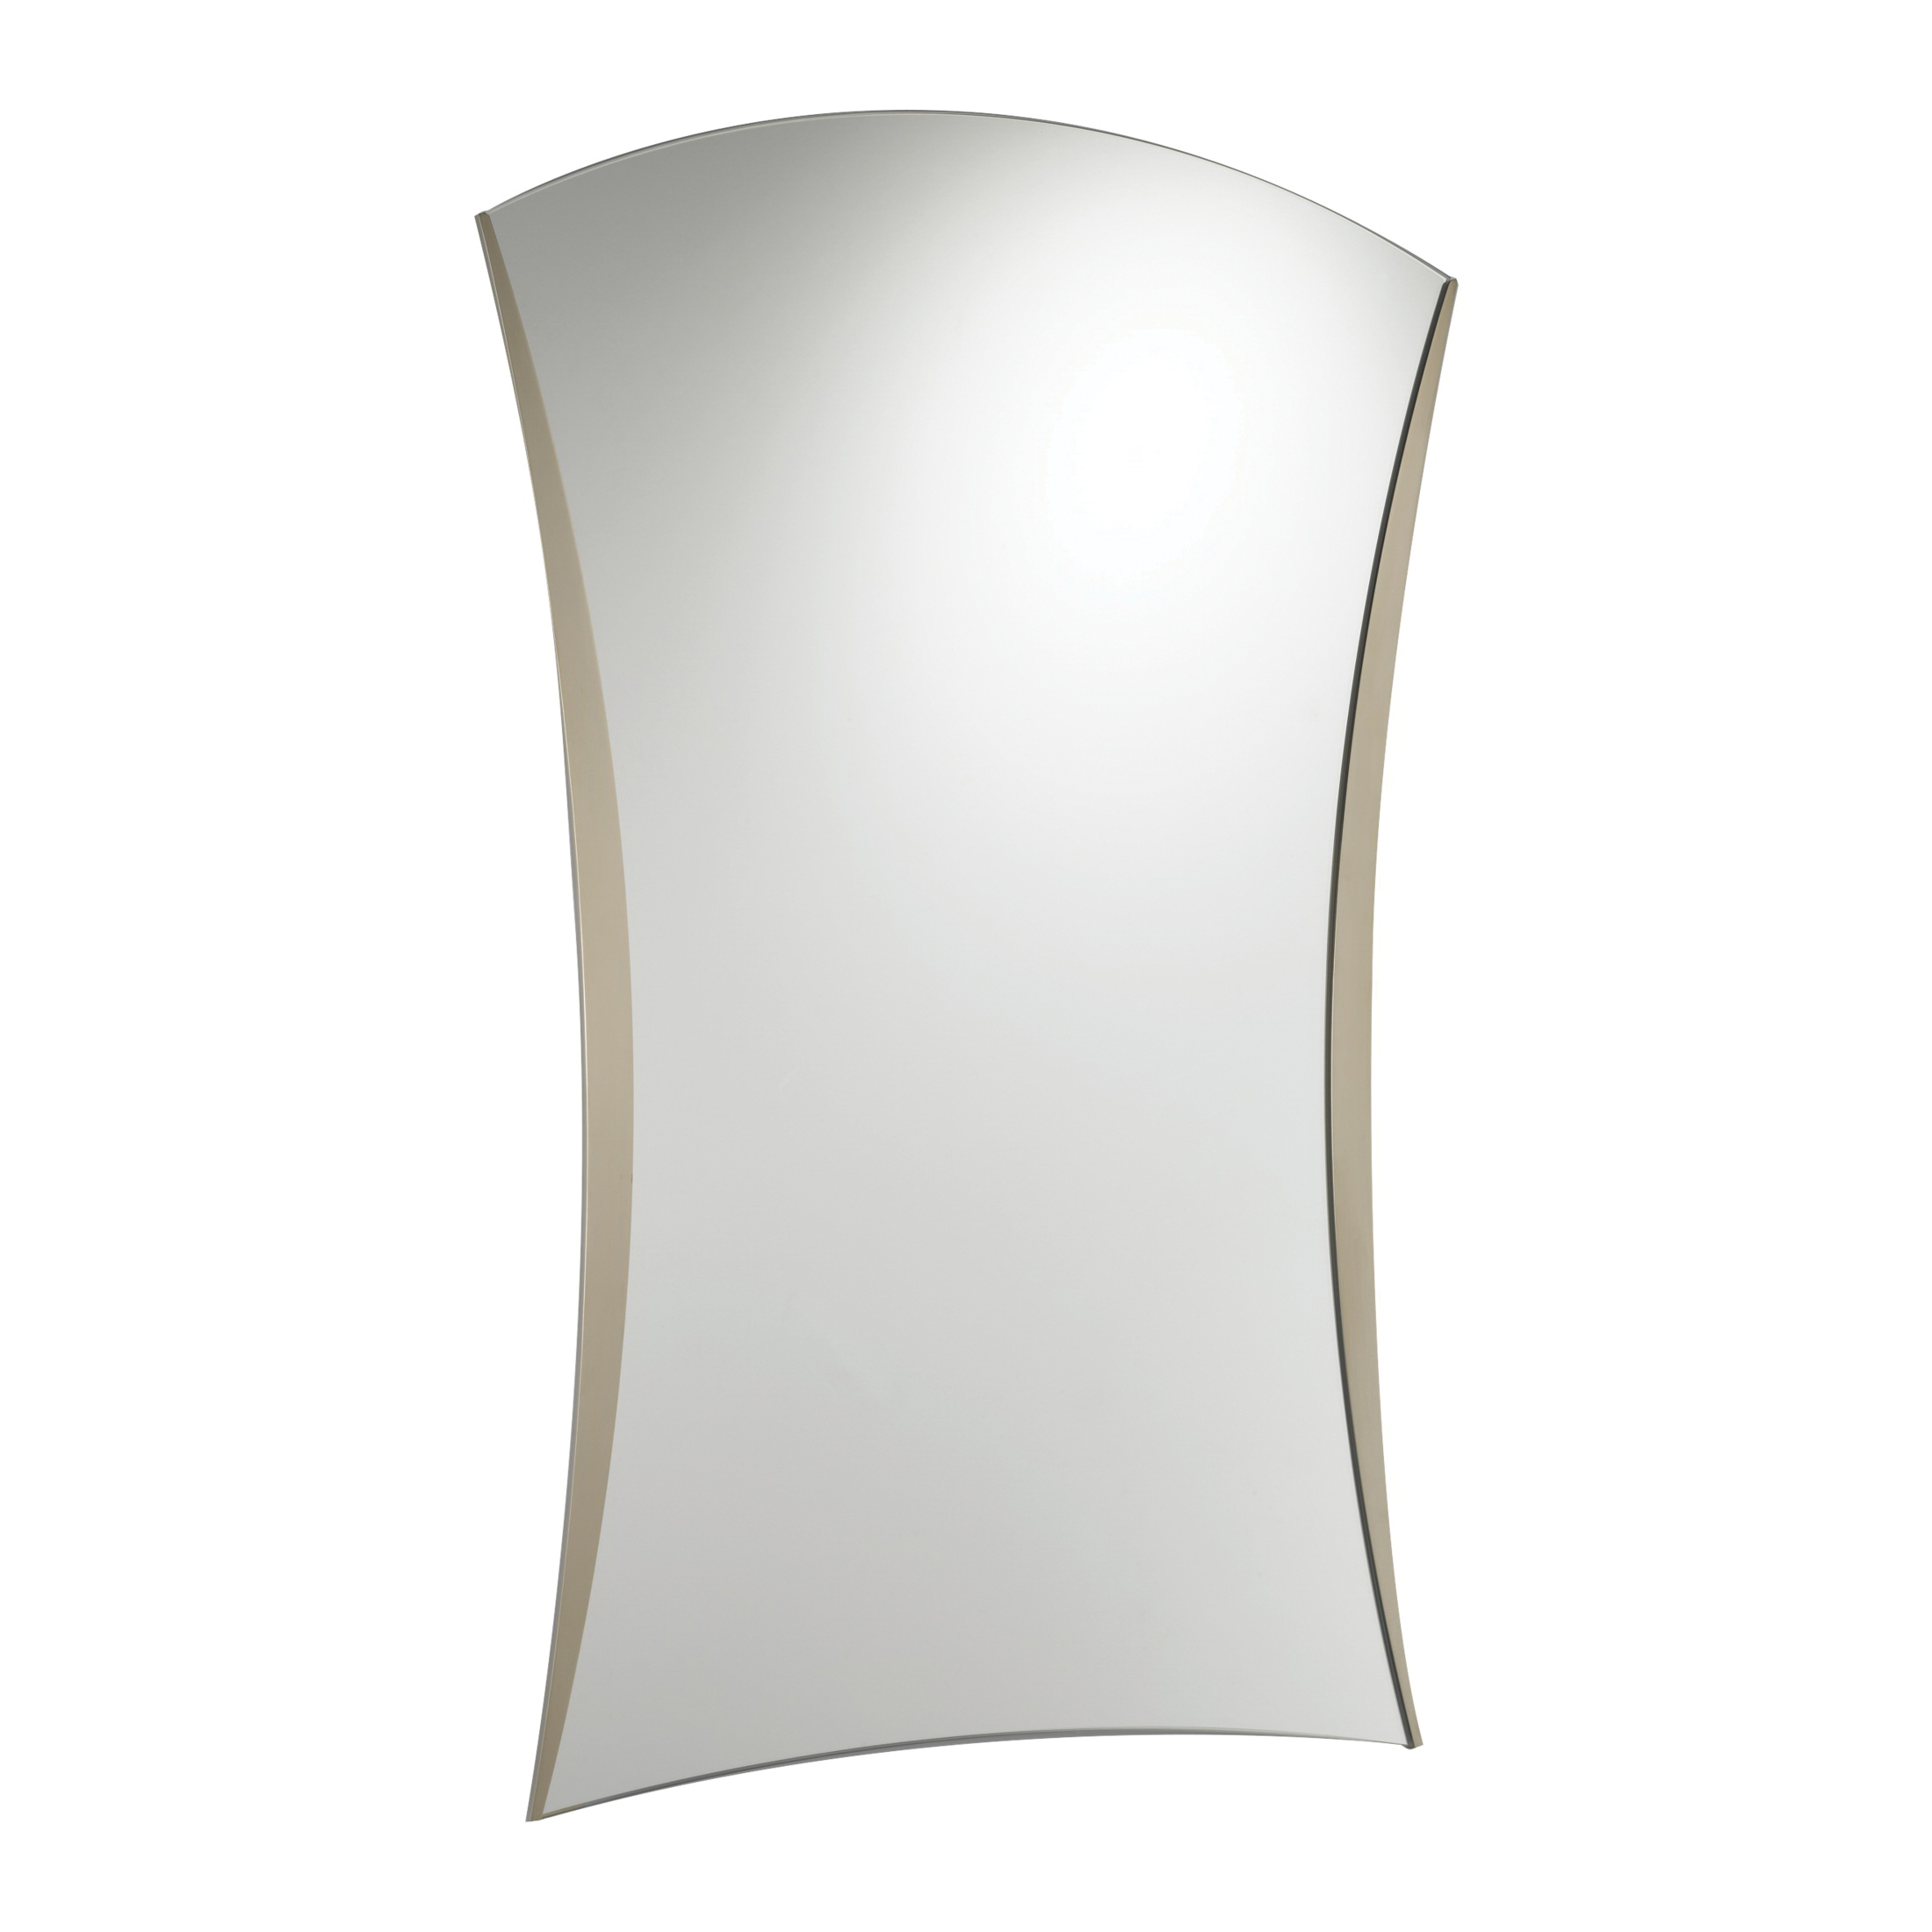 Brizo® 69980-BN RSVP® Wall Mirror, Rectangular, 22.91 in at Top and 20.85 in at Bottom W, Brushed Nickel, Import